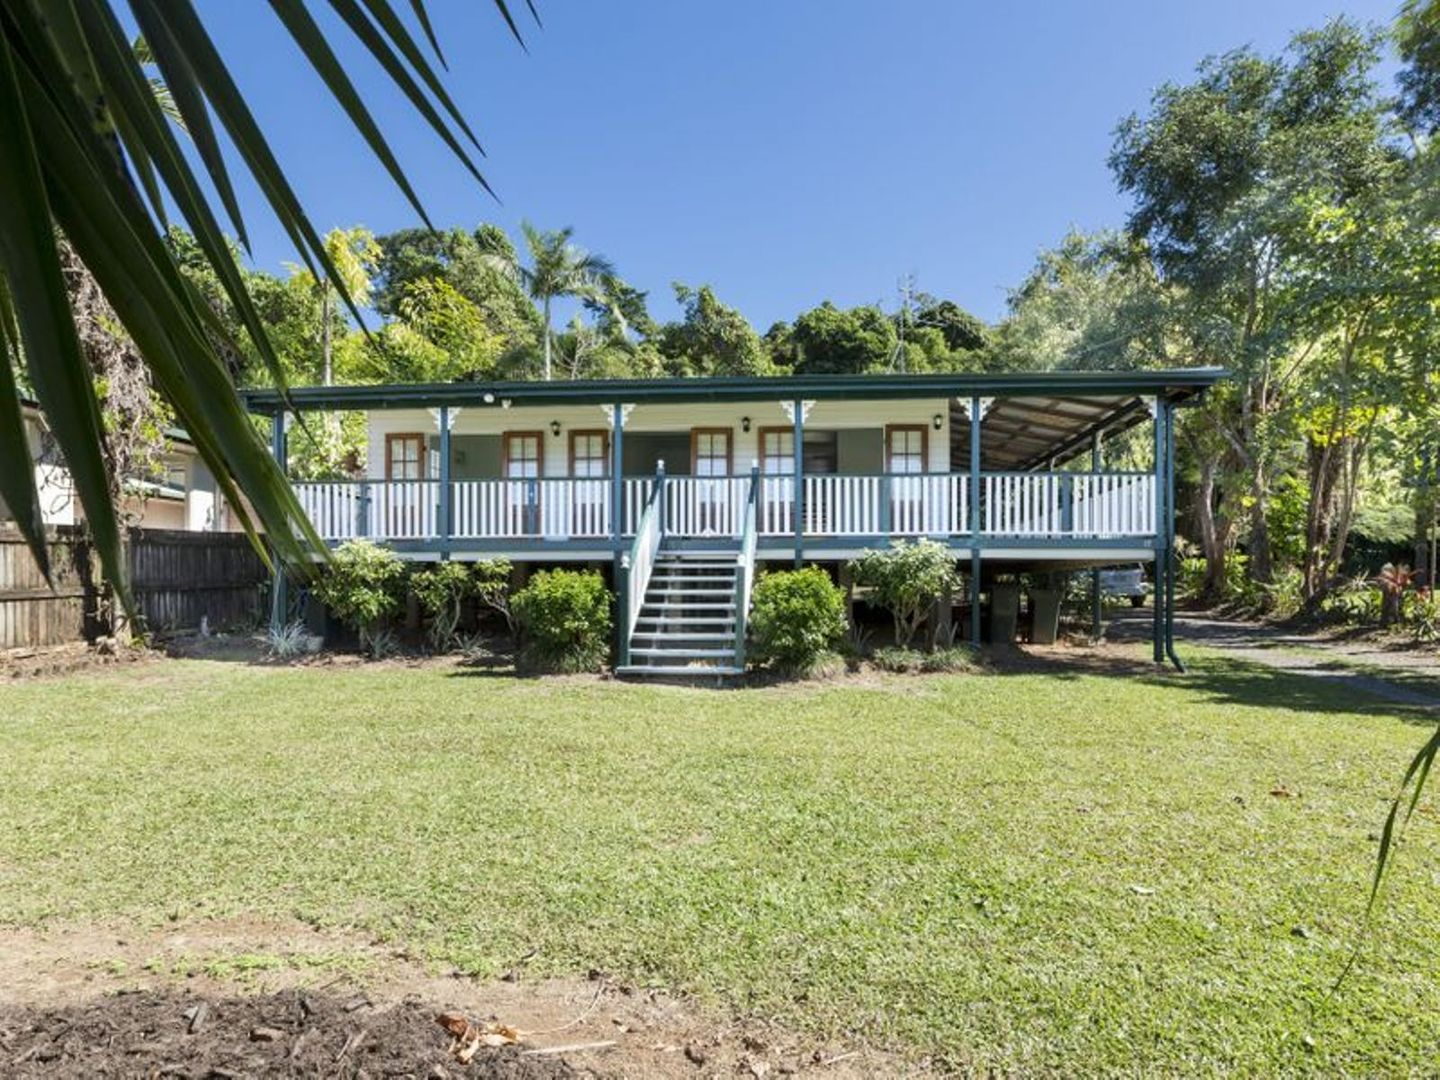 17 ENID Street, Flying Fish Point QLD 4860, Image 0